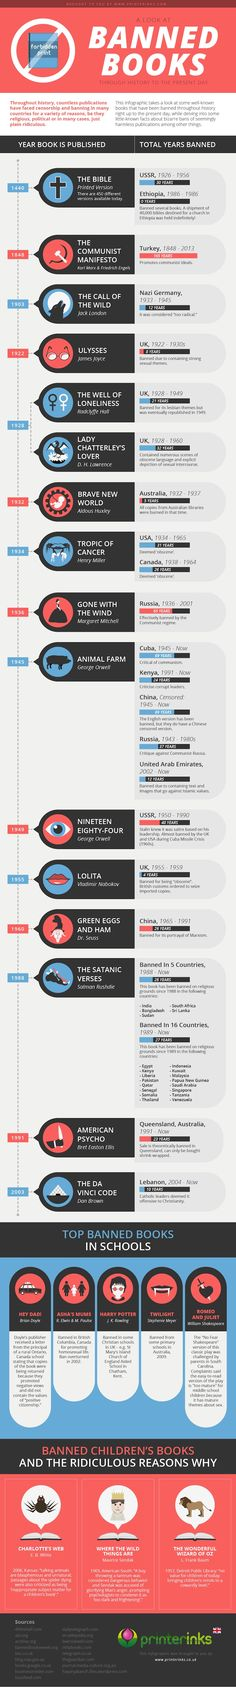 An Infographic Detailing Where, When, and Why Books Have Been Censored Through History